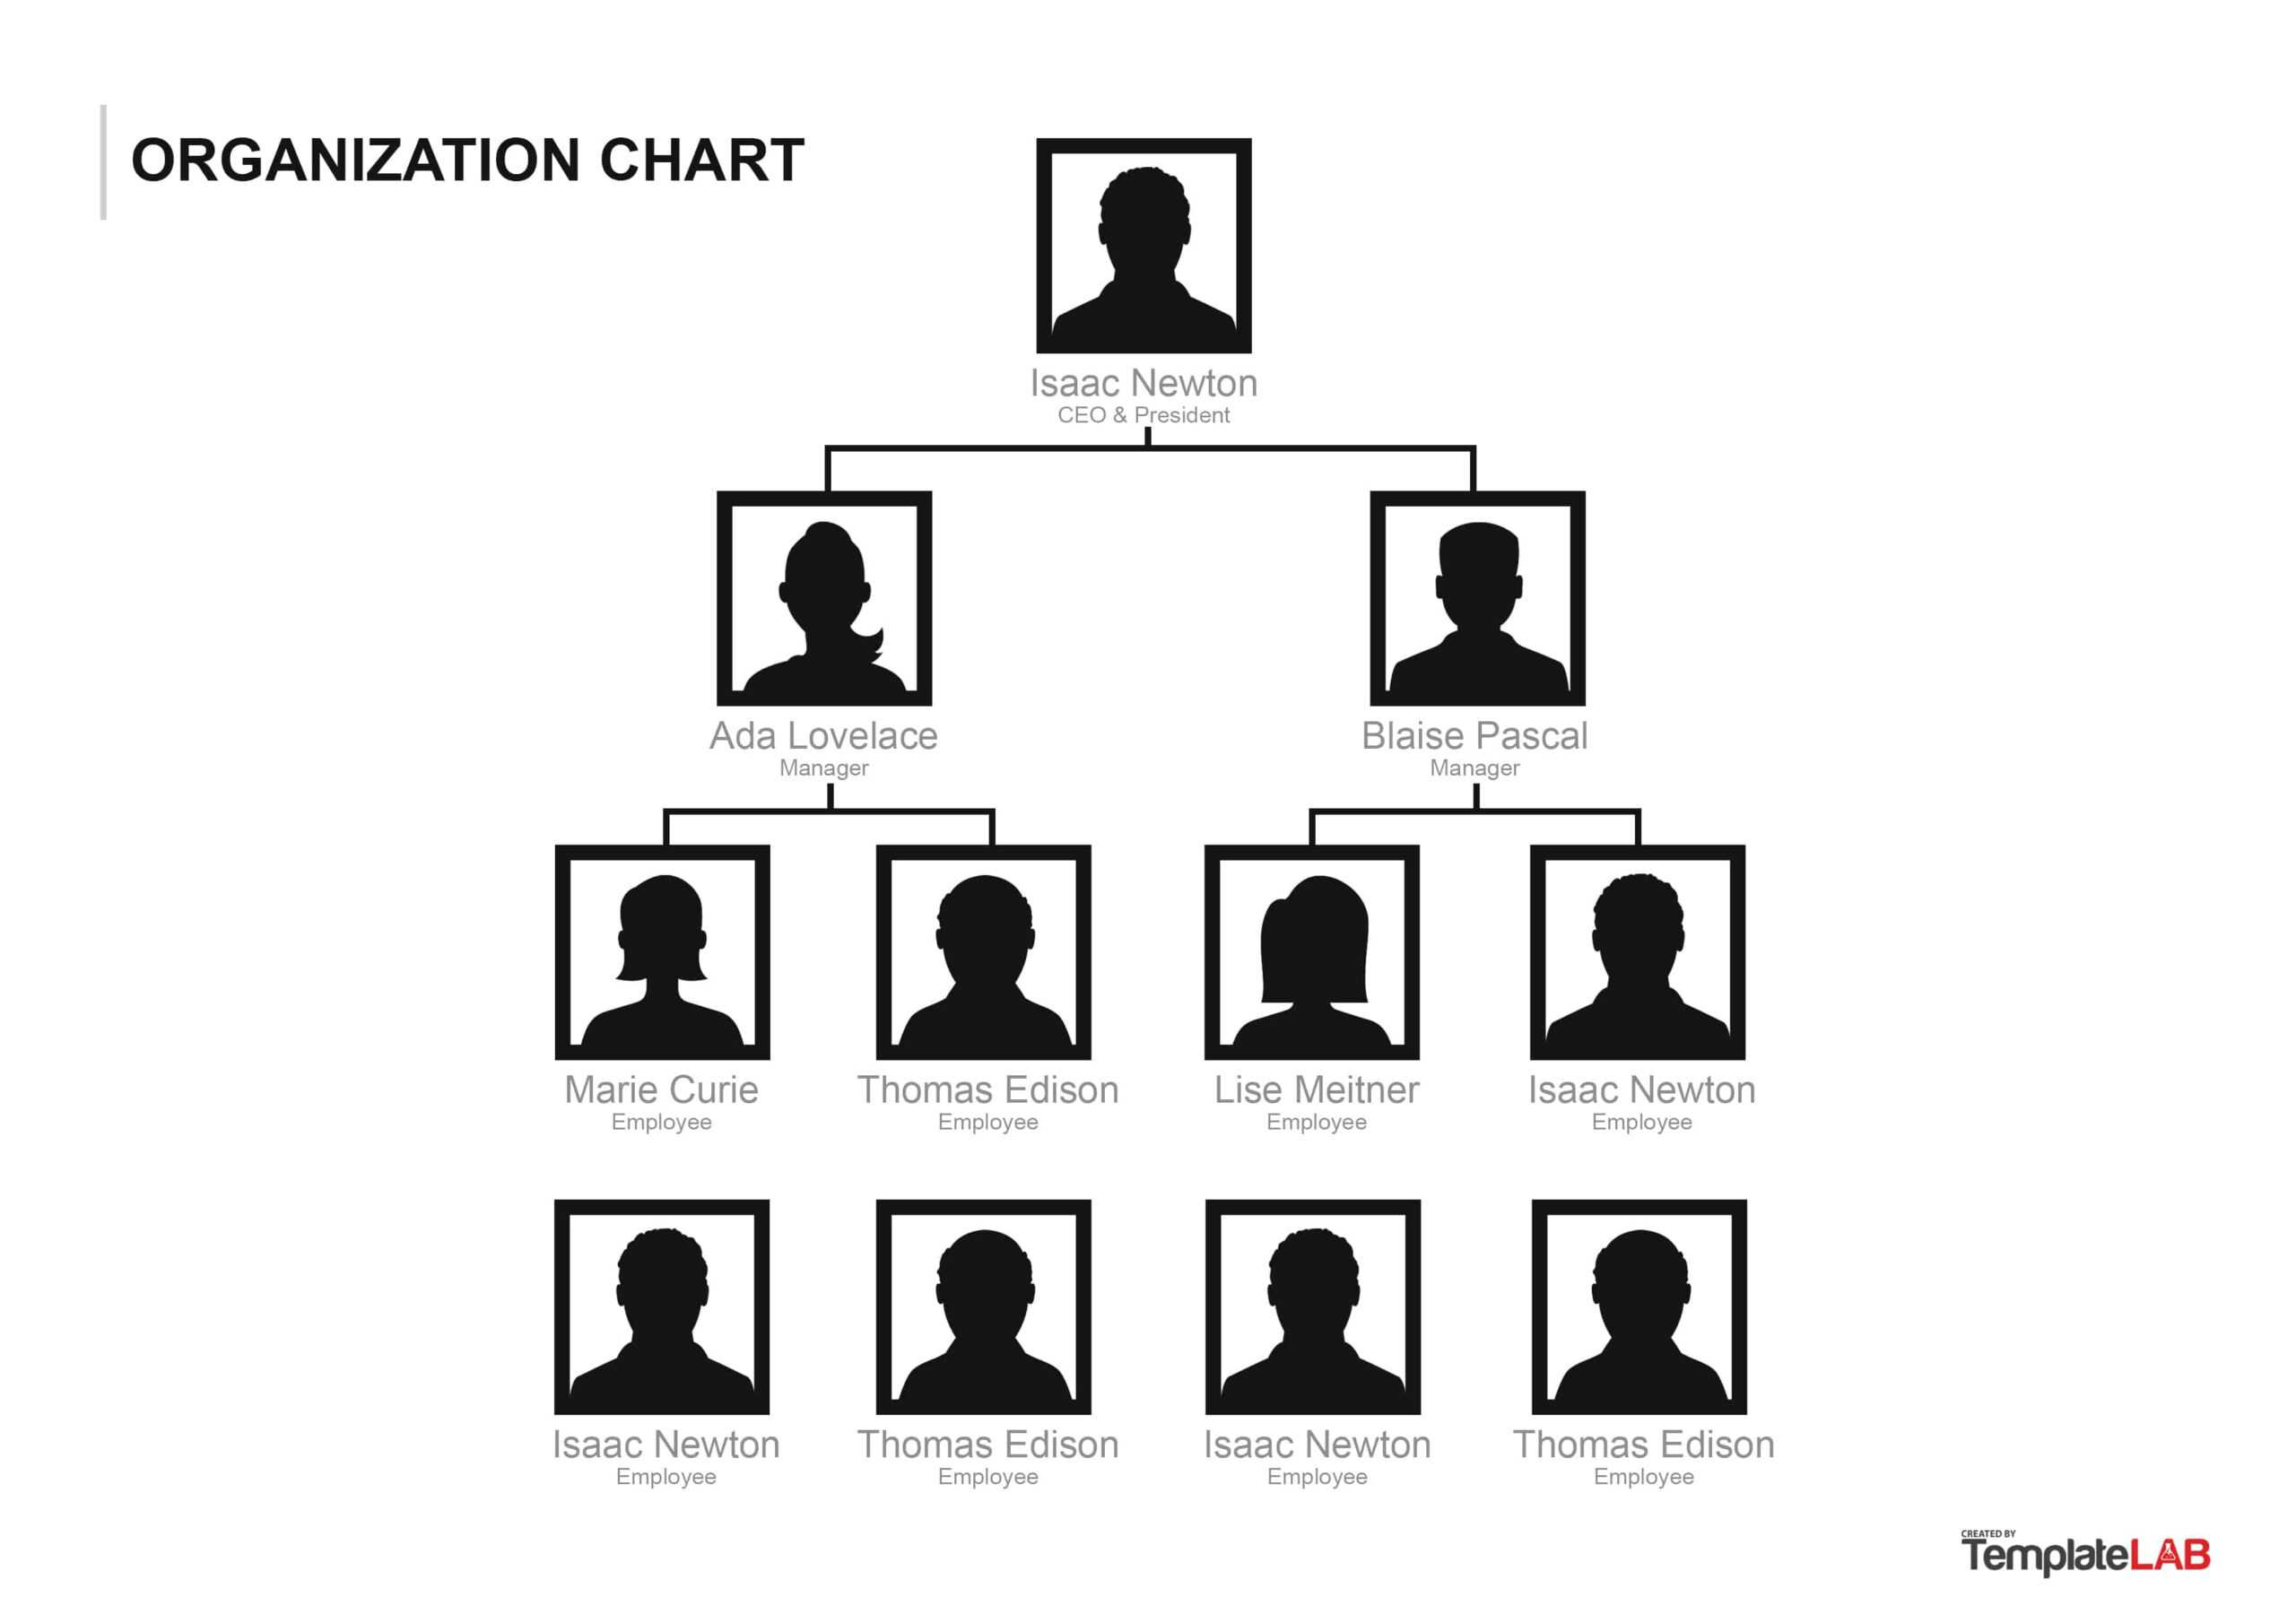 40 Organizational Chart Templates (Word, Excel, Powerpoint) Inside Free Blank Organizational Chart Template